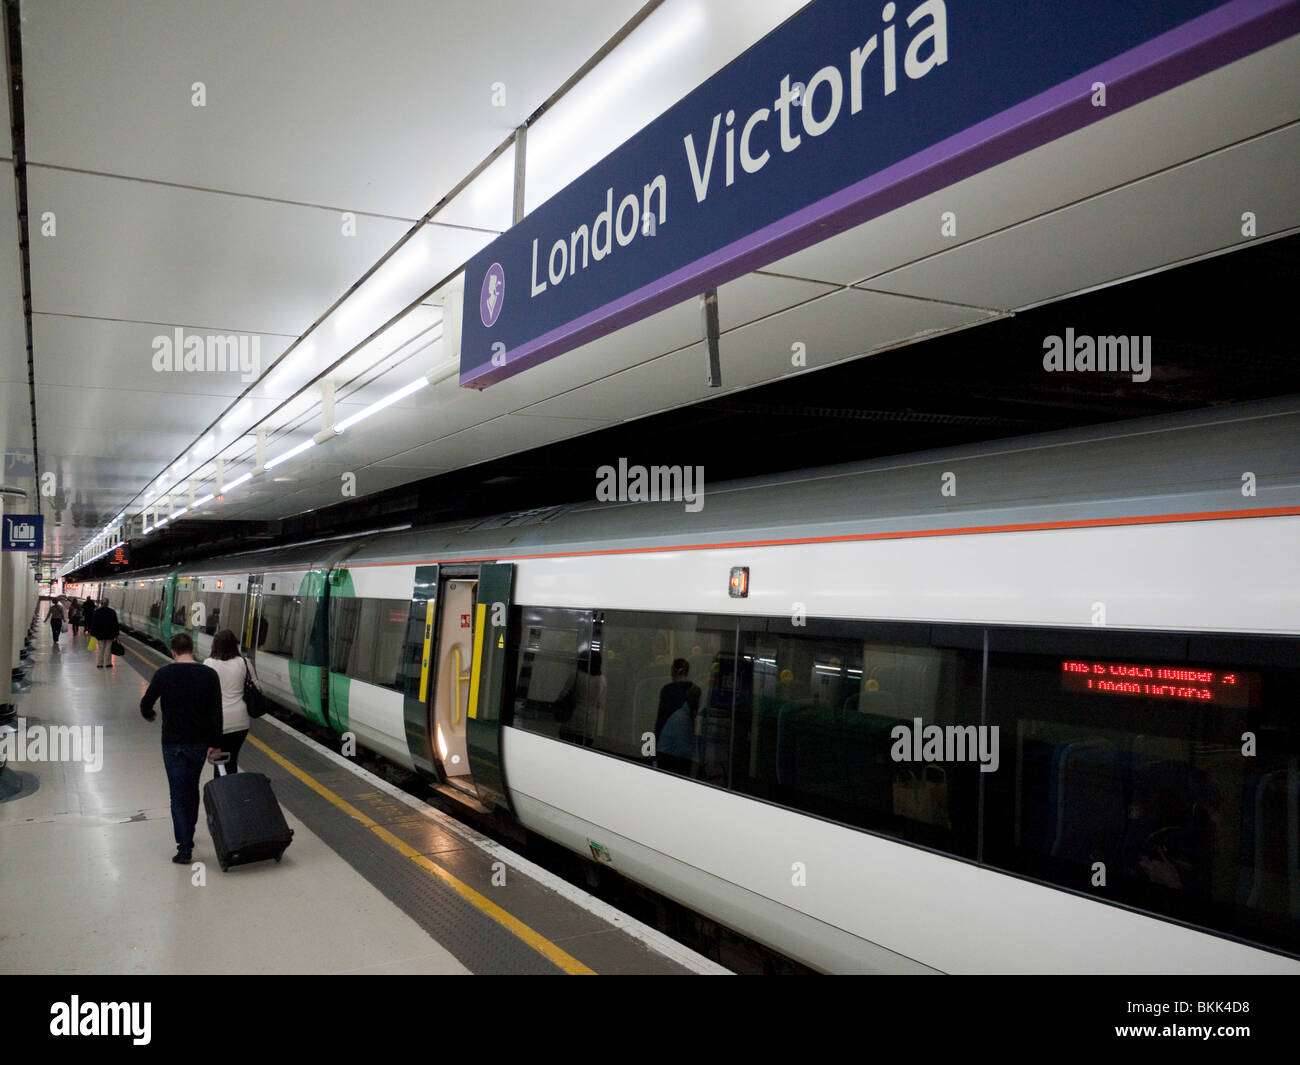 A train at a platform at London Victoria station in Britain - Stock Image